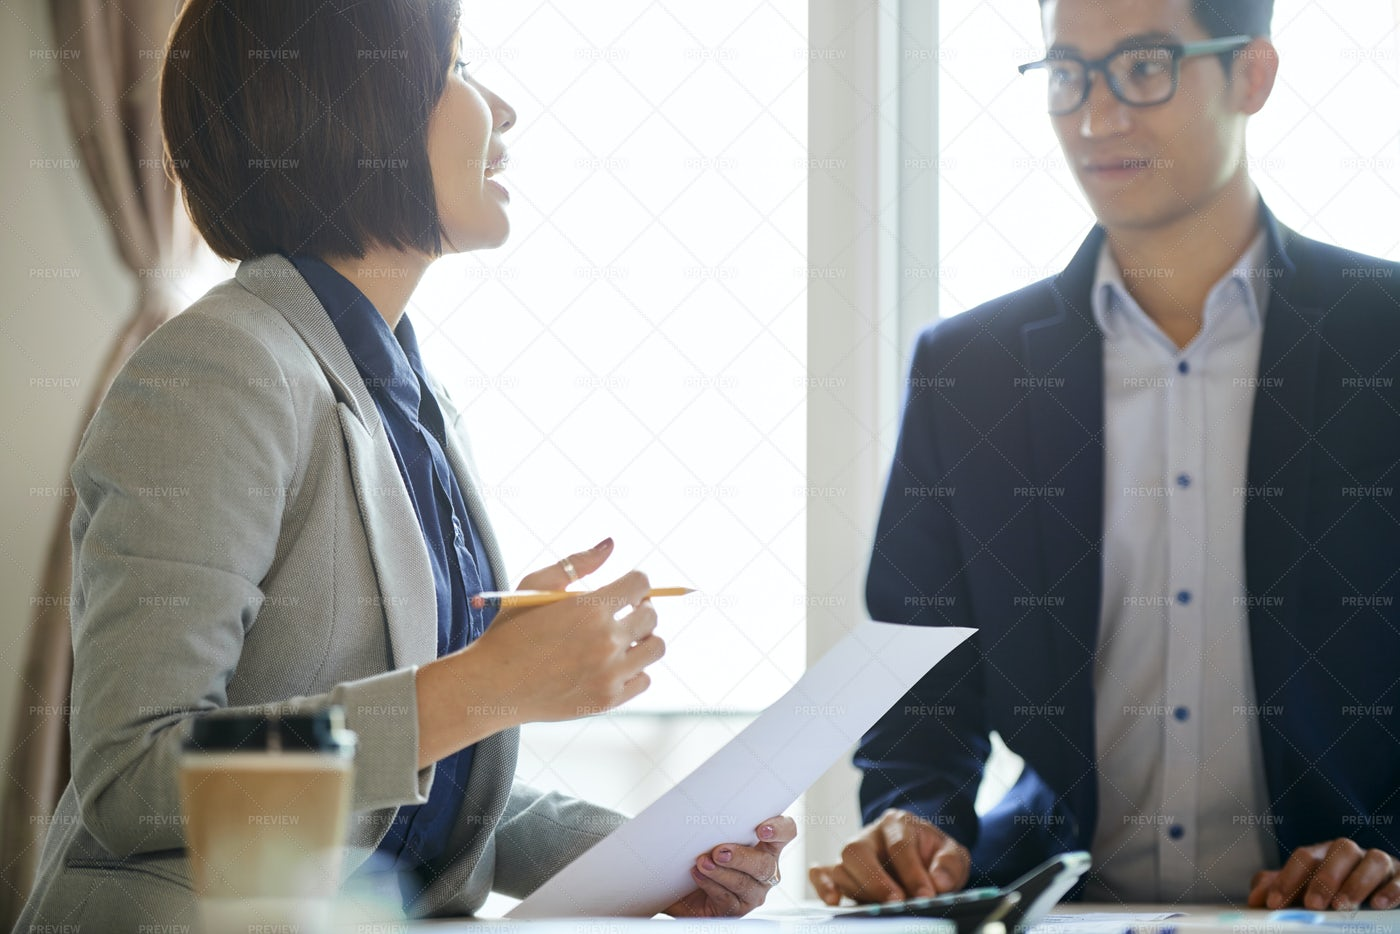 Business People Discussing Work: Stock Photos